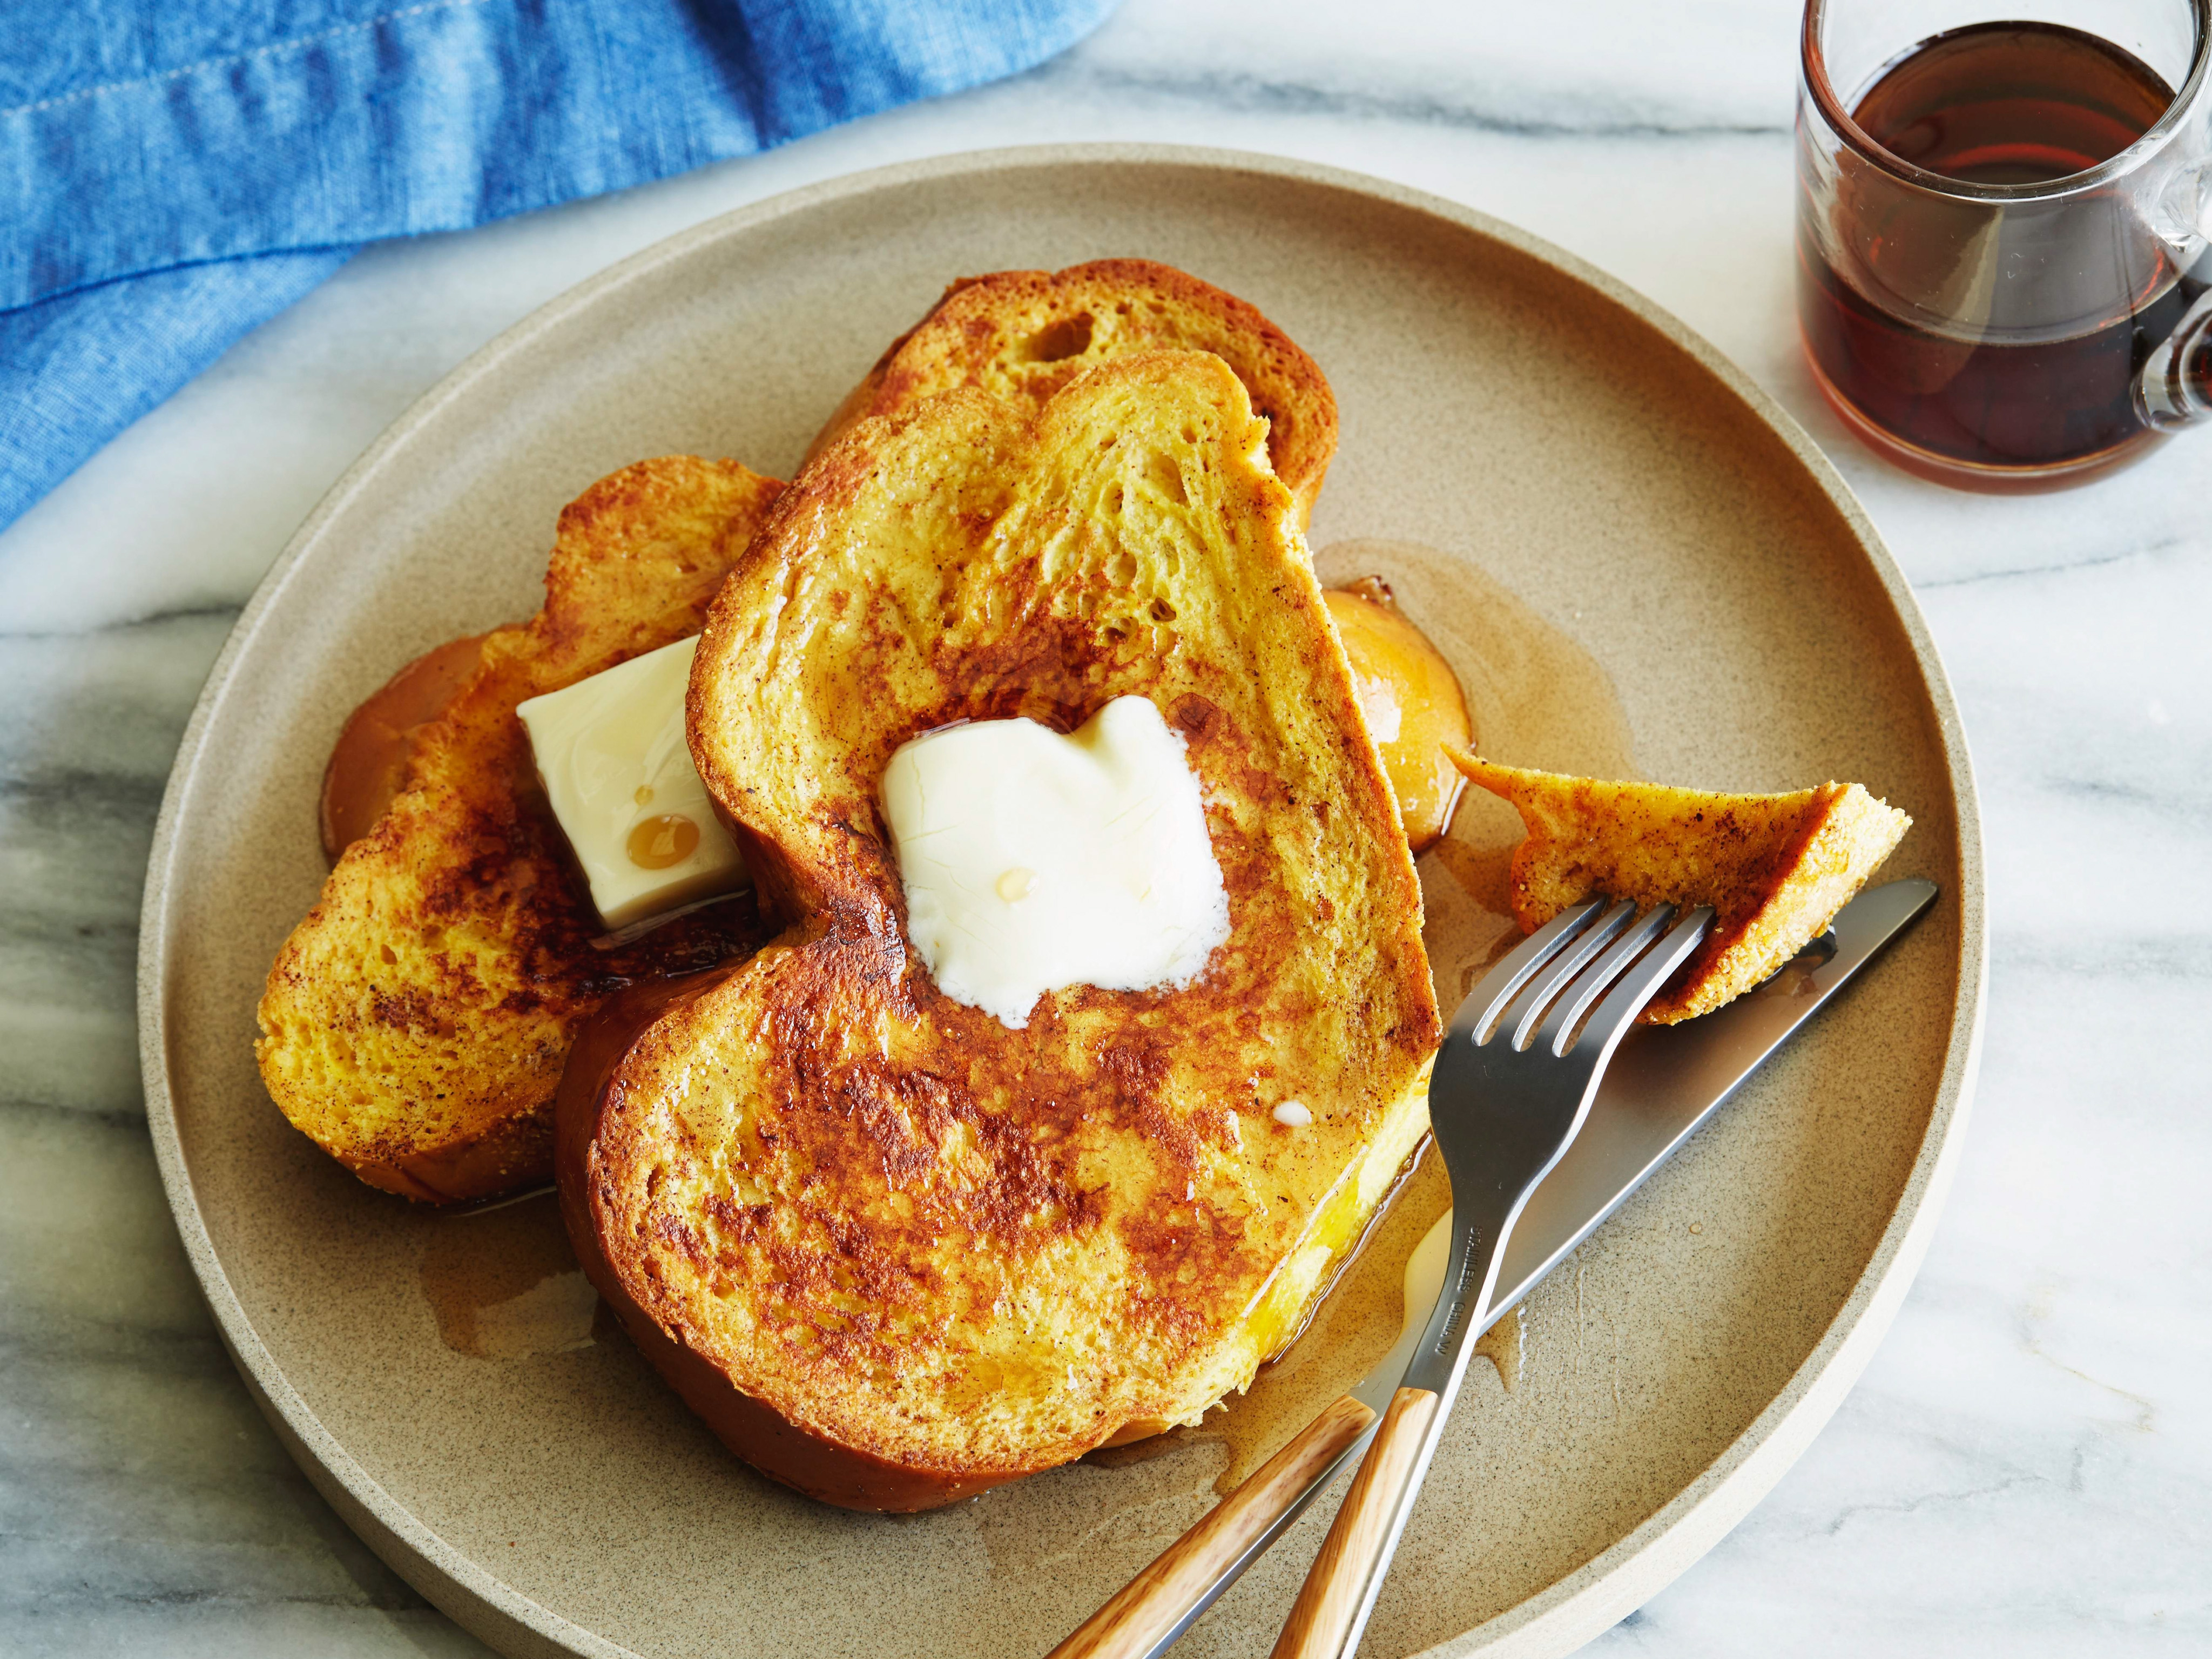 French Toast Hd